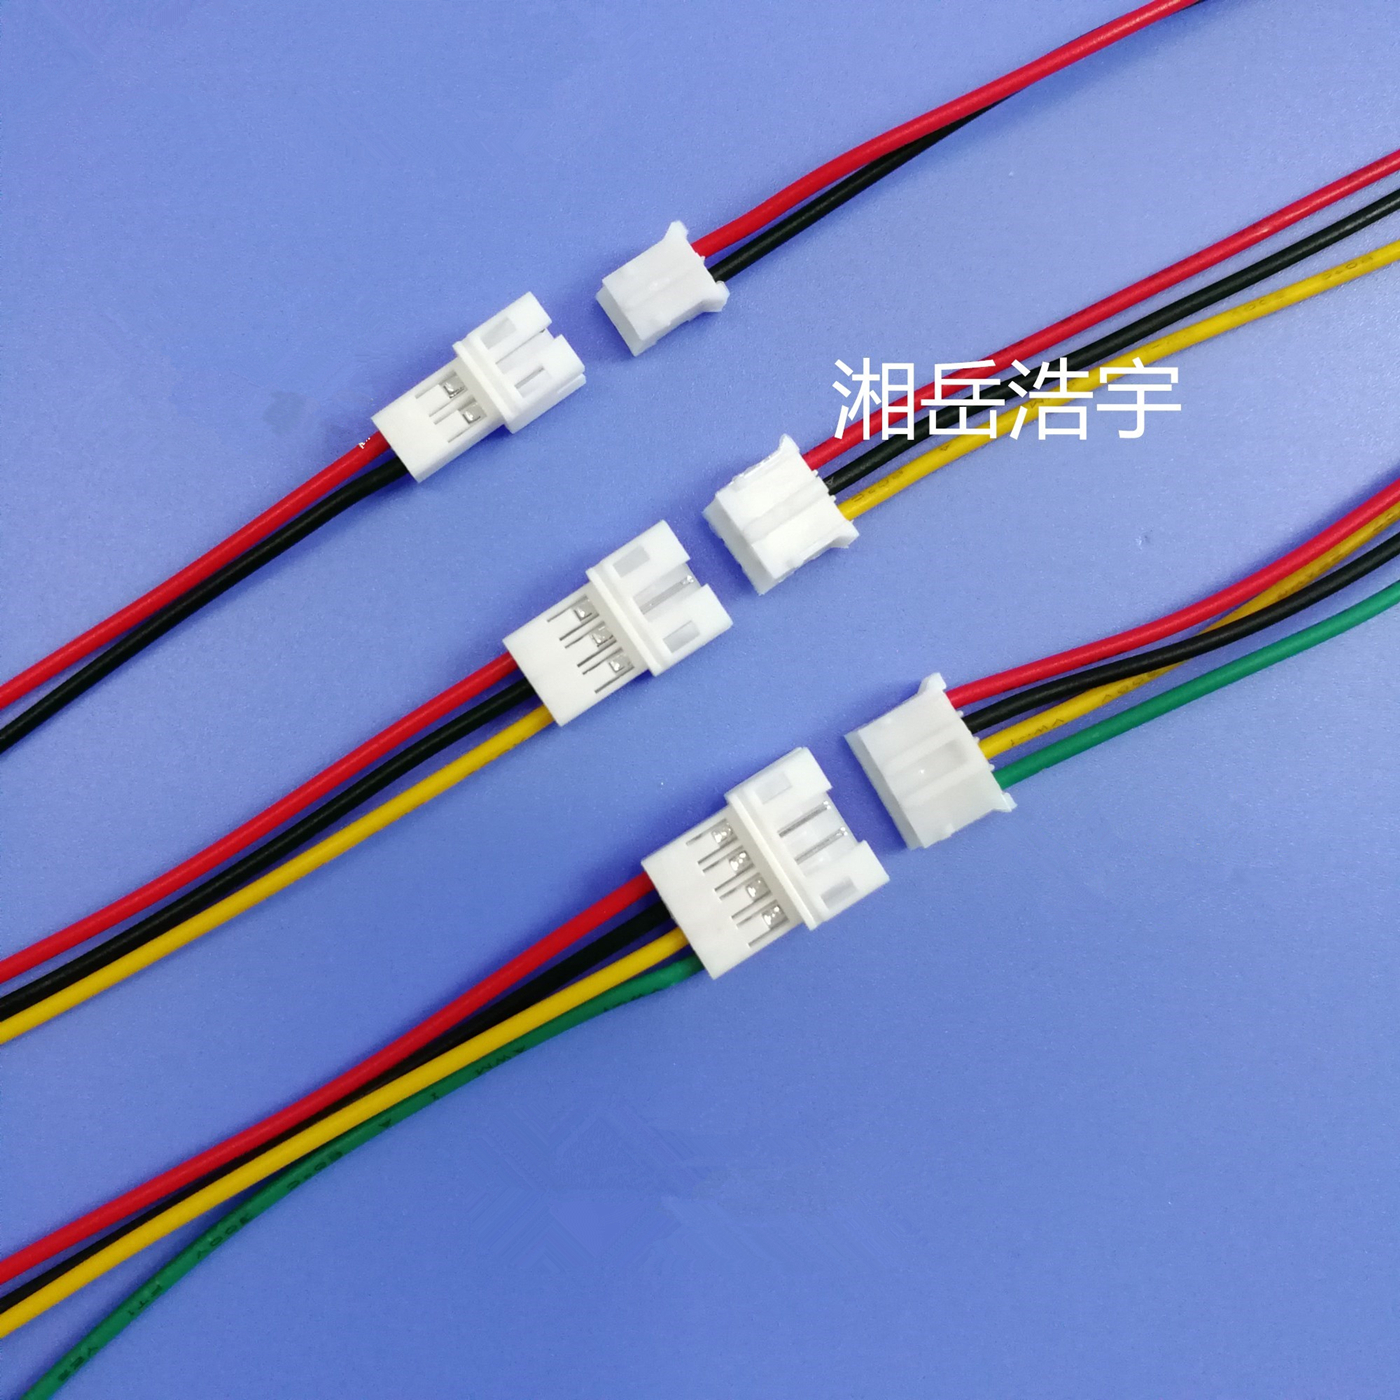 5Sets Mini Micro 2.0 PH Connector Male Female 2/3/4/5/6-Pin Plug With Wires Cables Socket 100MM 26AWG5Sets Mini Micro 2.0 PH Connector Male Female 2/3/4/5/6-Pin Plug With Wires Cables Socket 100MM 26AWG